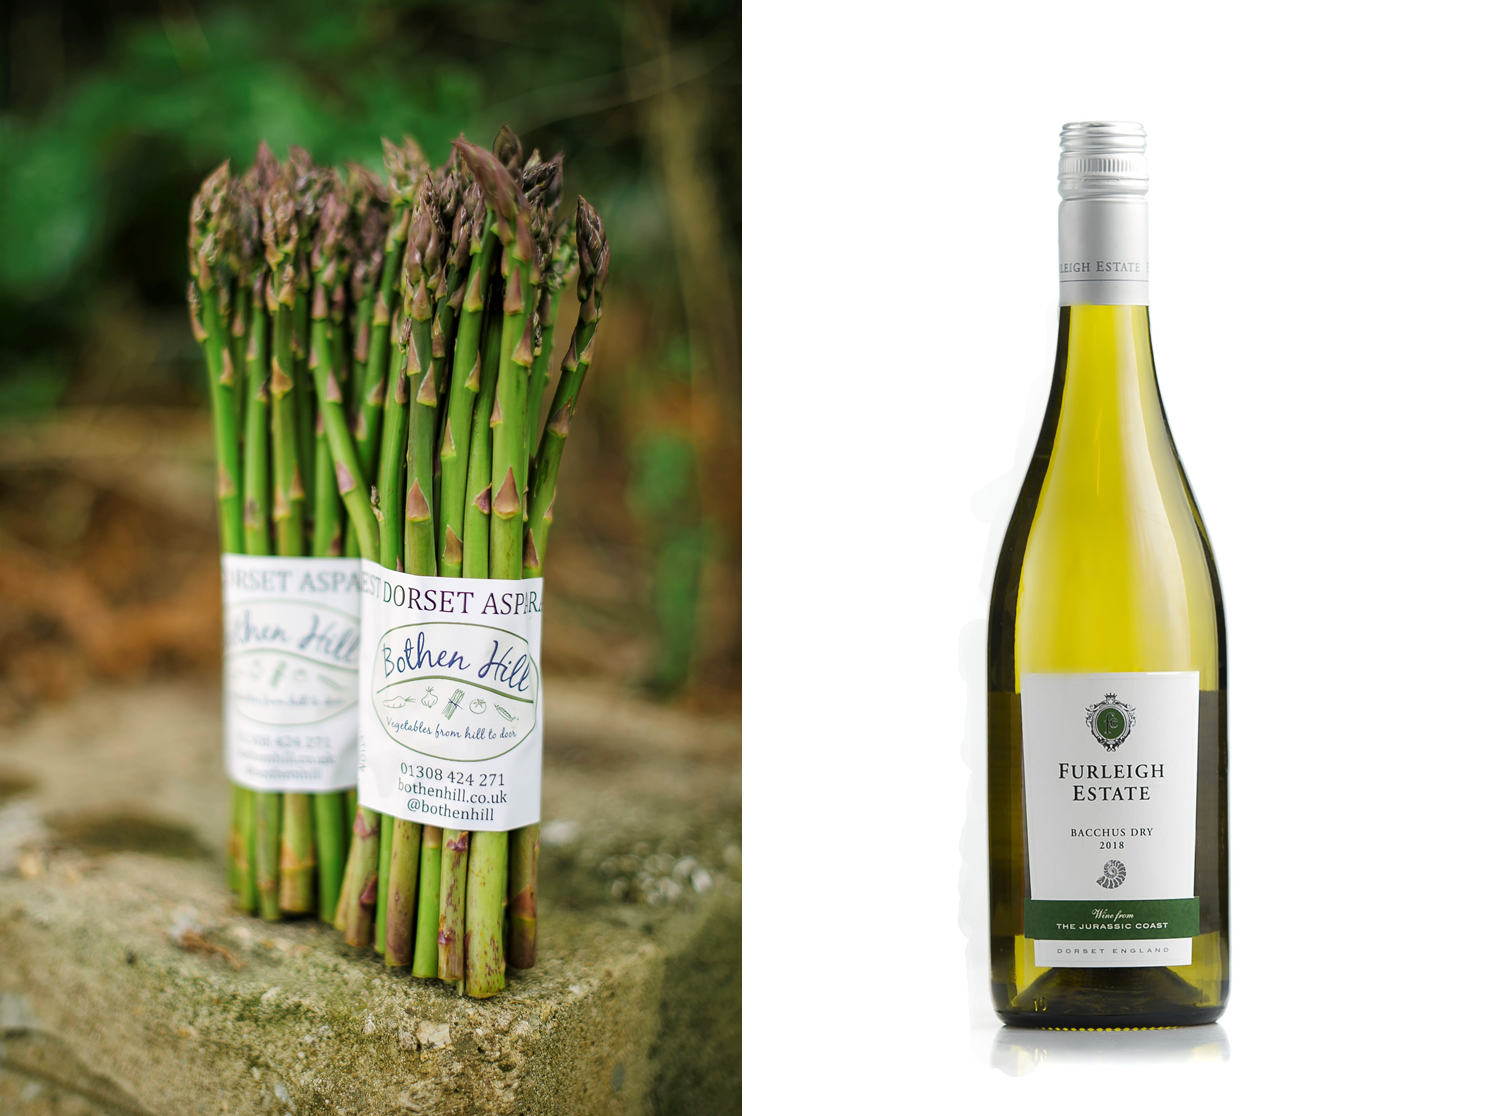 Furleigh Estate Bacchus and Asparagus Tasting